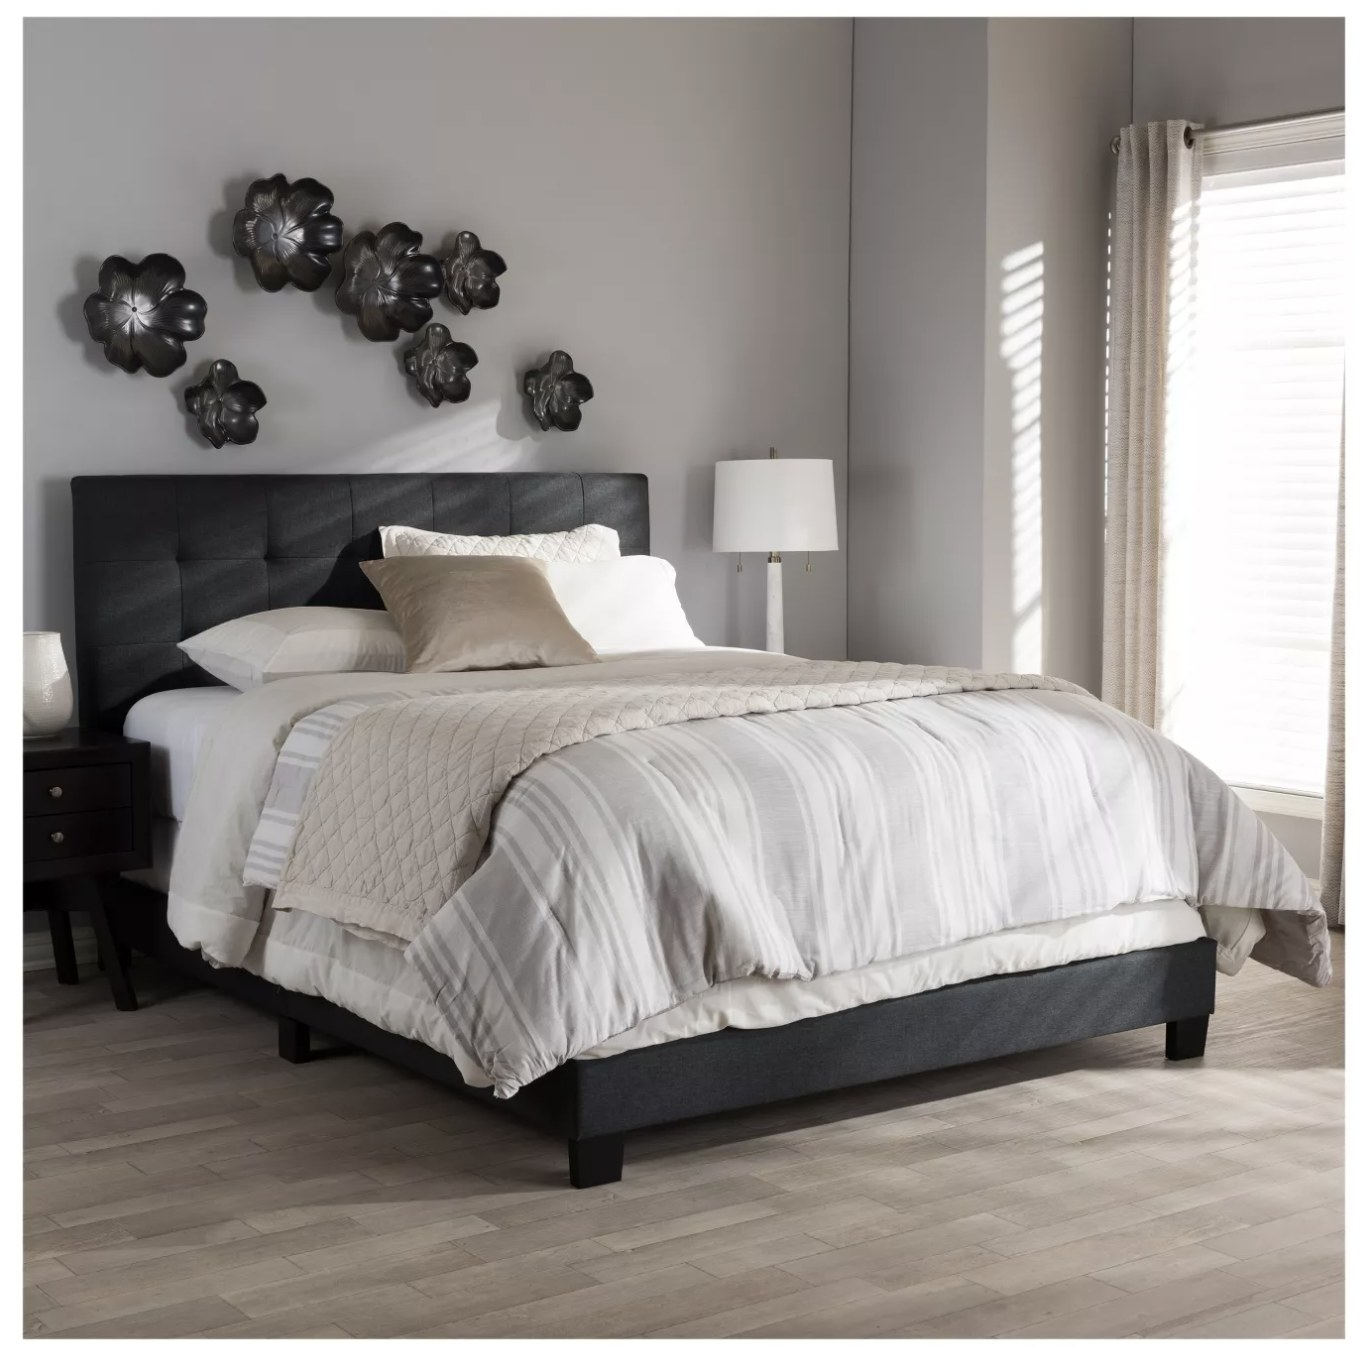 A dark grey fabric bed frame under a mattress with comforter in a bedroom